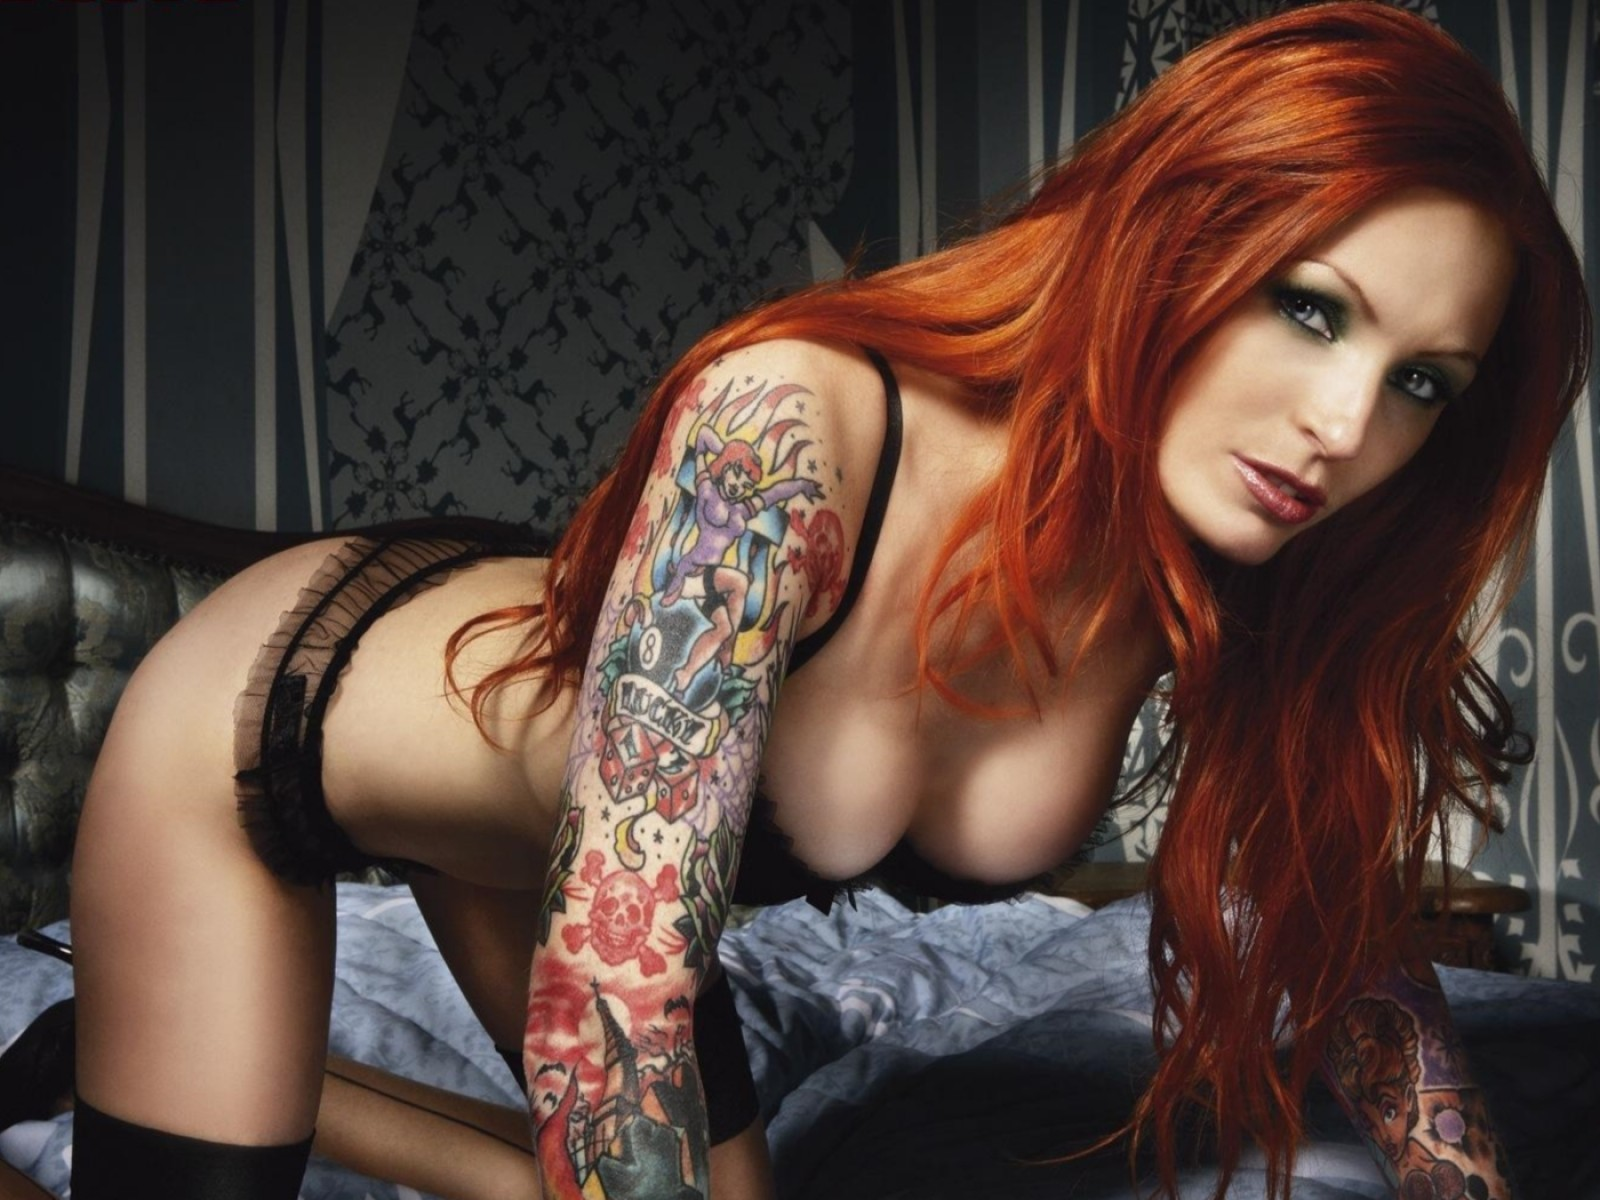 Hot Girls With Tattoos Wallpaper